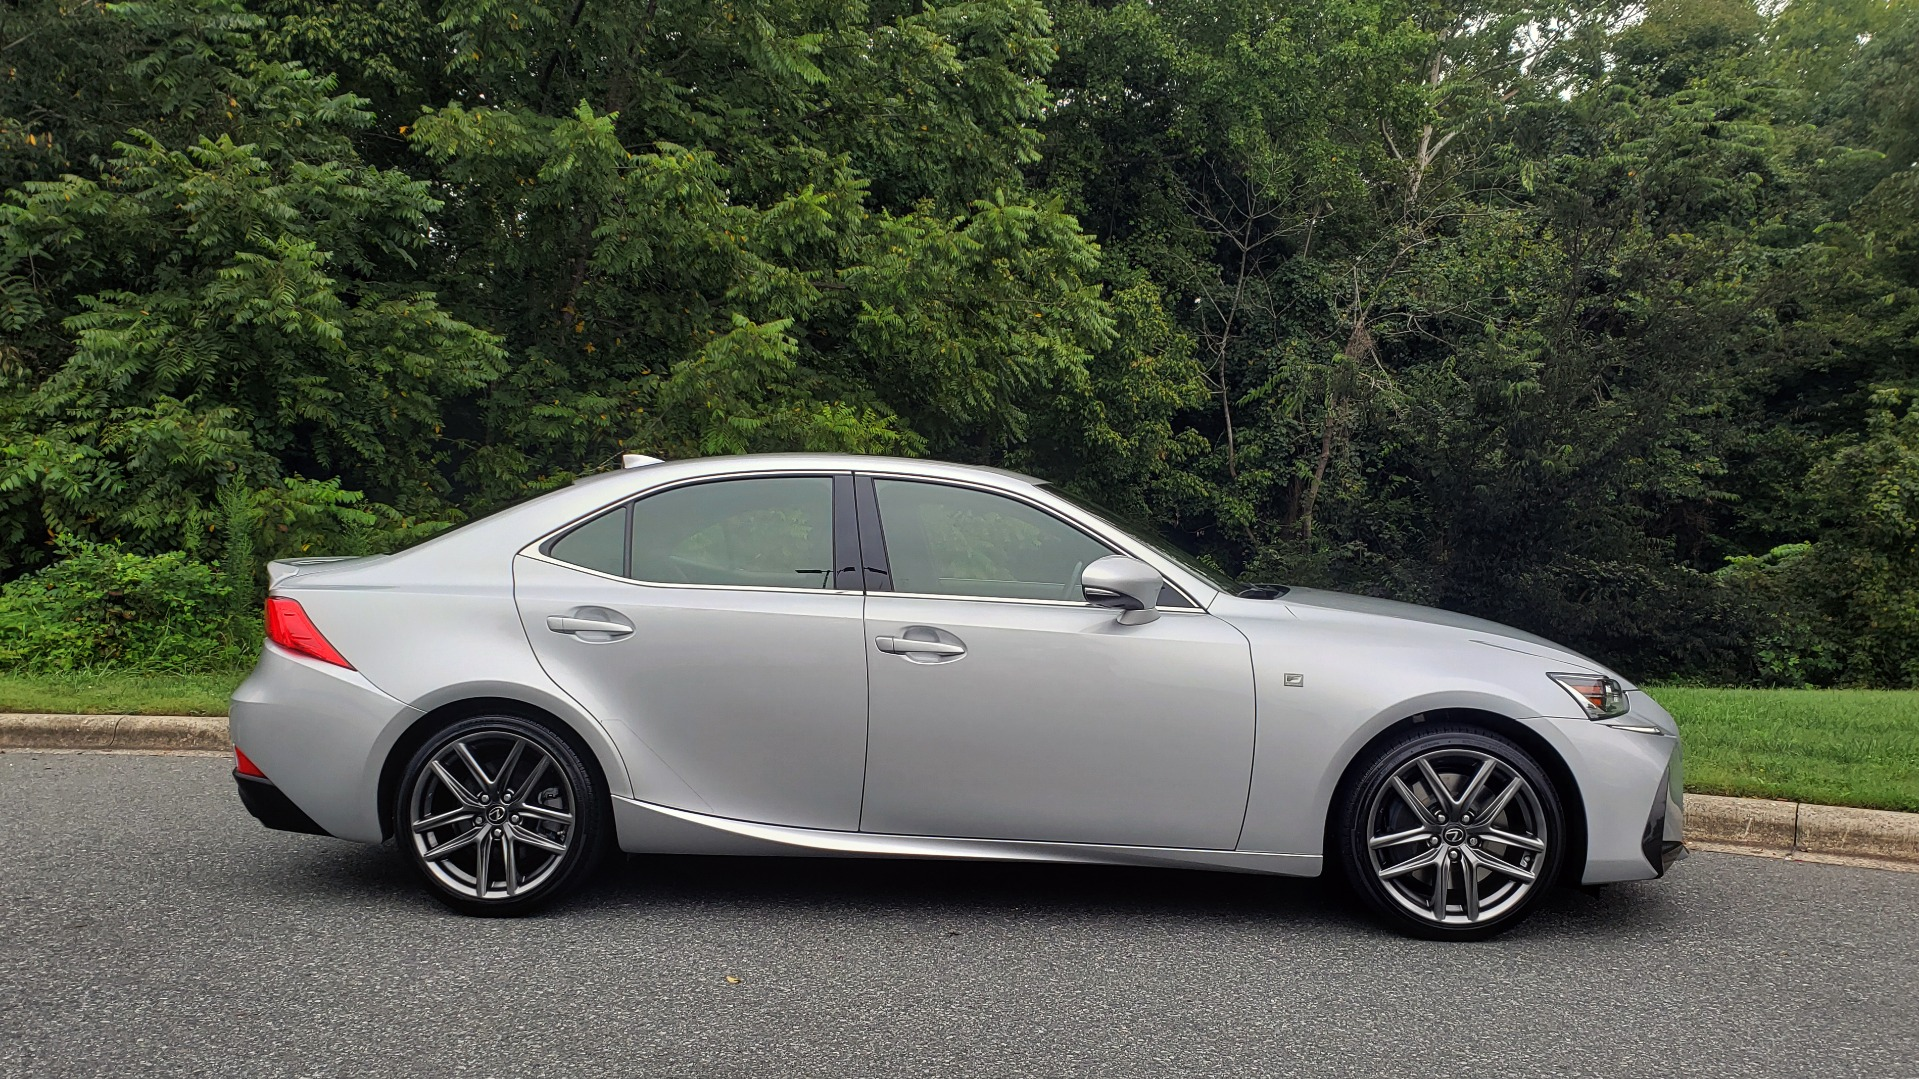 Used 2017 Lexus IS 200T F-SPORT / LEATHER / SUNROOF / 18IN WHEELS / REARVIEW for sale Sold at Formula Imports in Charlotte NC 28227 6